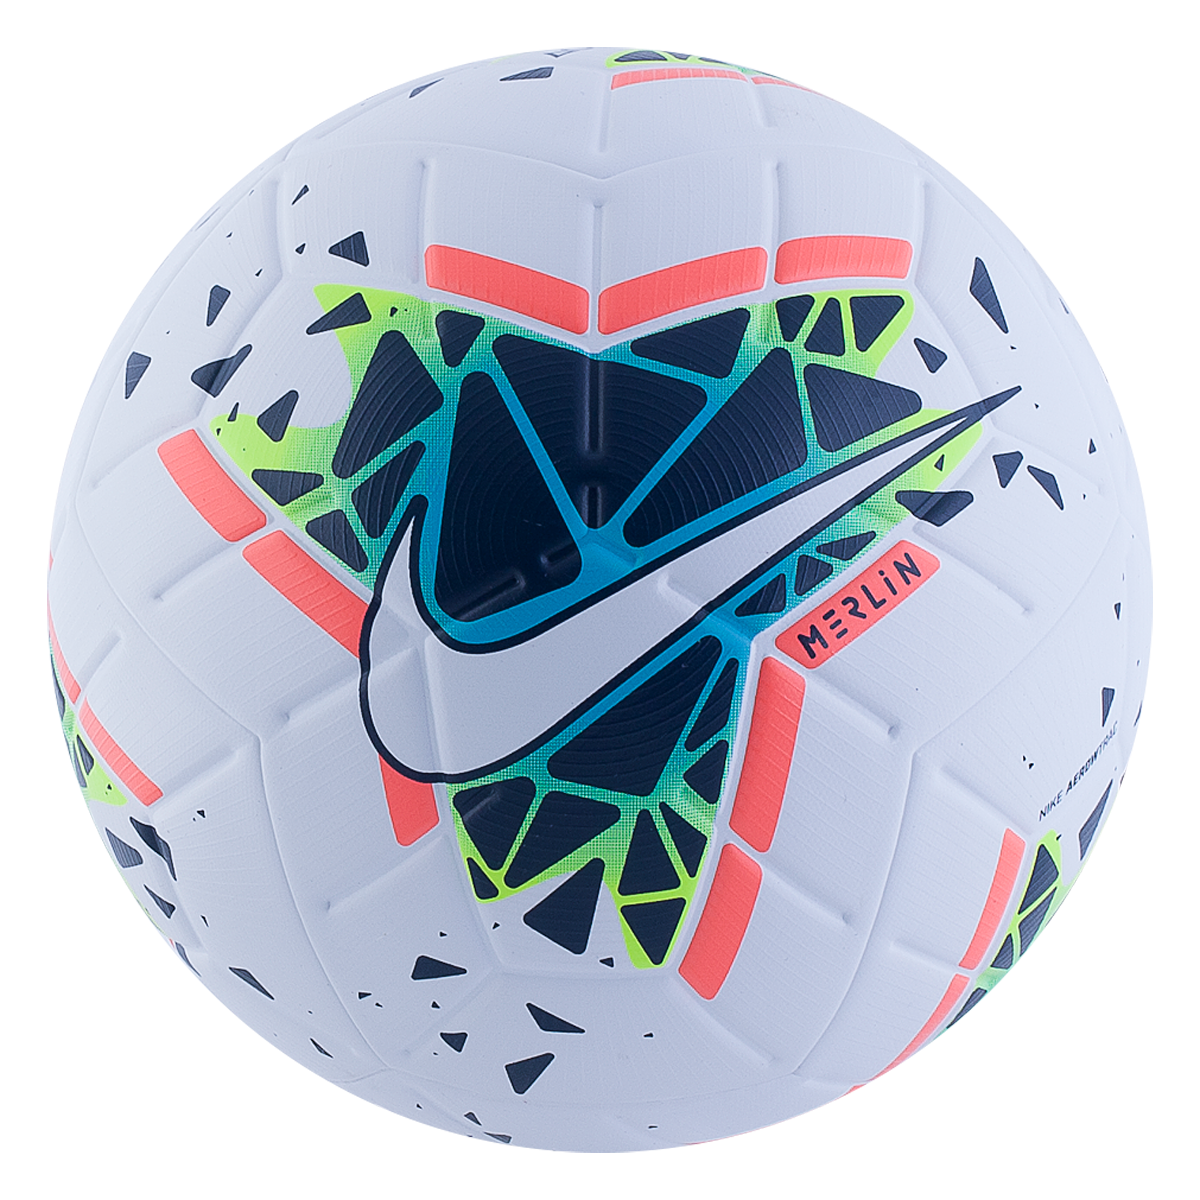 Nike Merlin Soccer Ball White Green 5 In 2020 Soccer Ball World Soccer Shop Football Ball